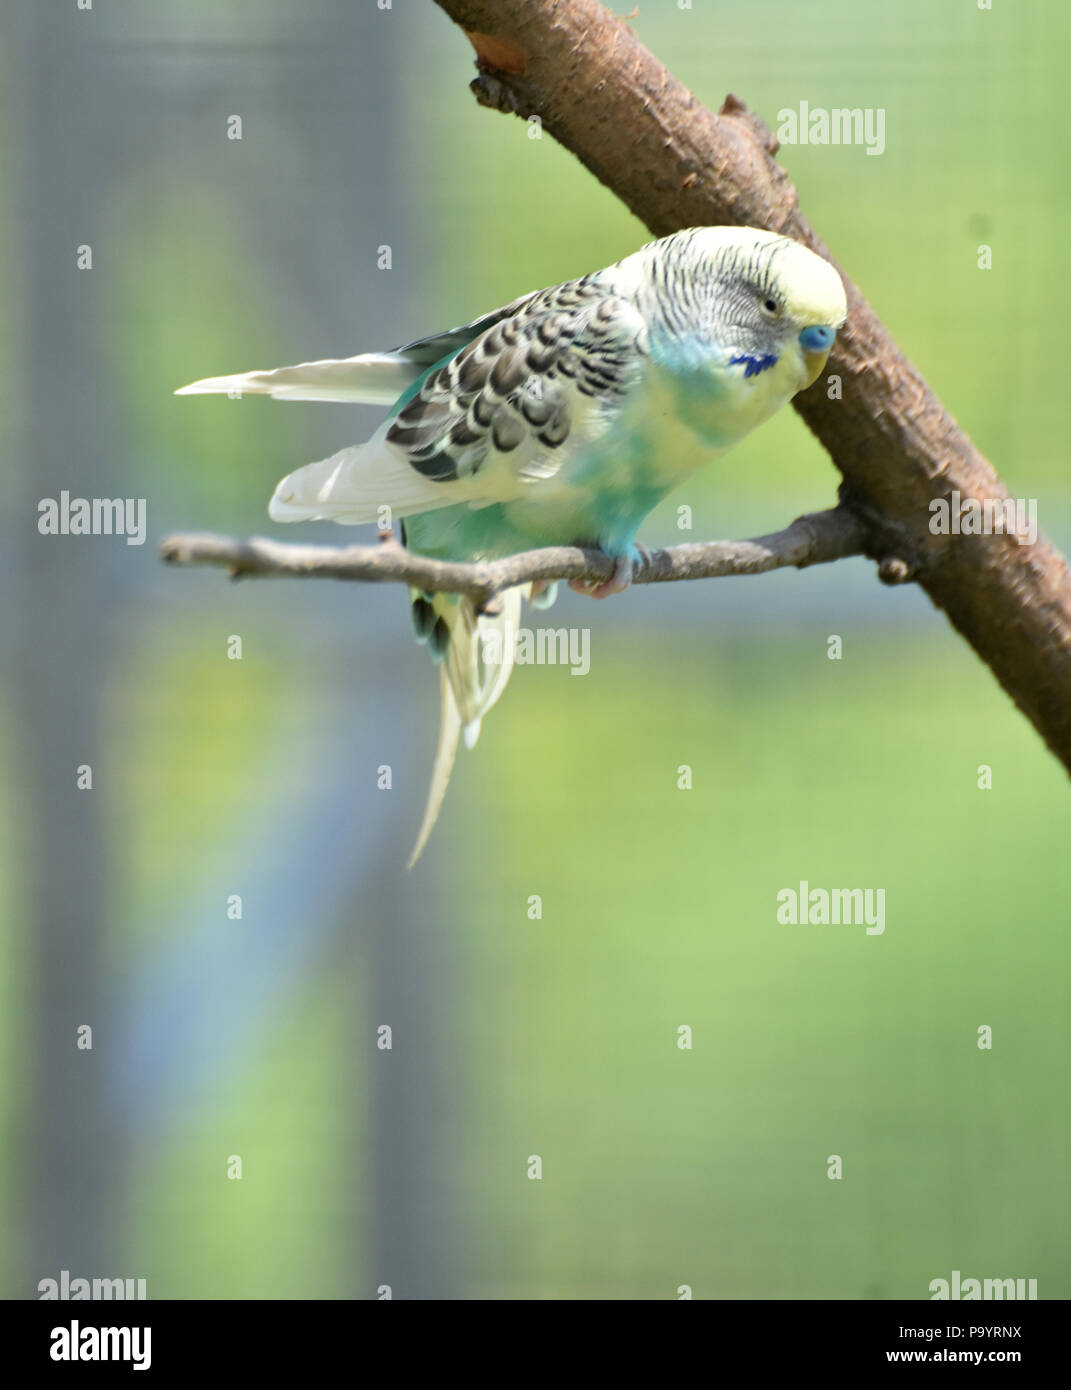 Precious and pretty pastel colored common parakeet bird. - Stock Image